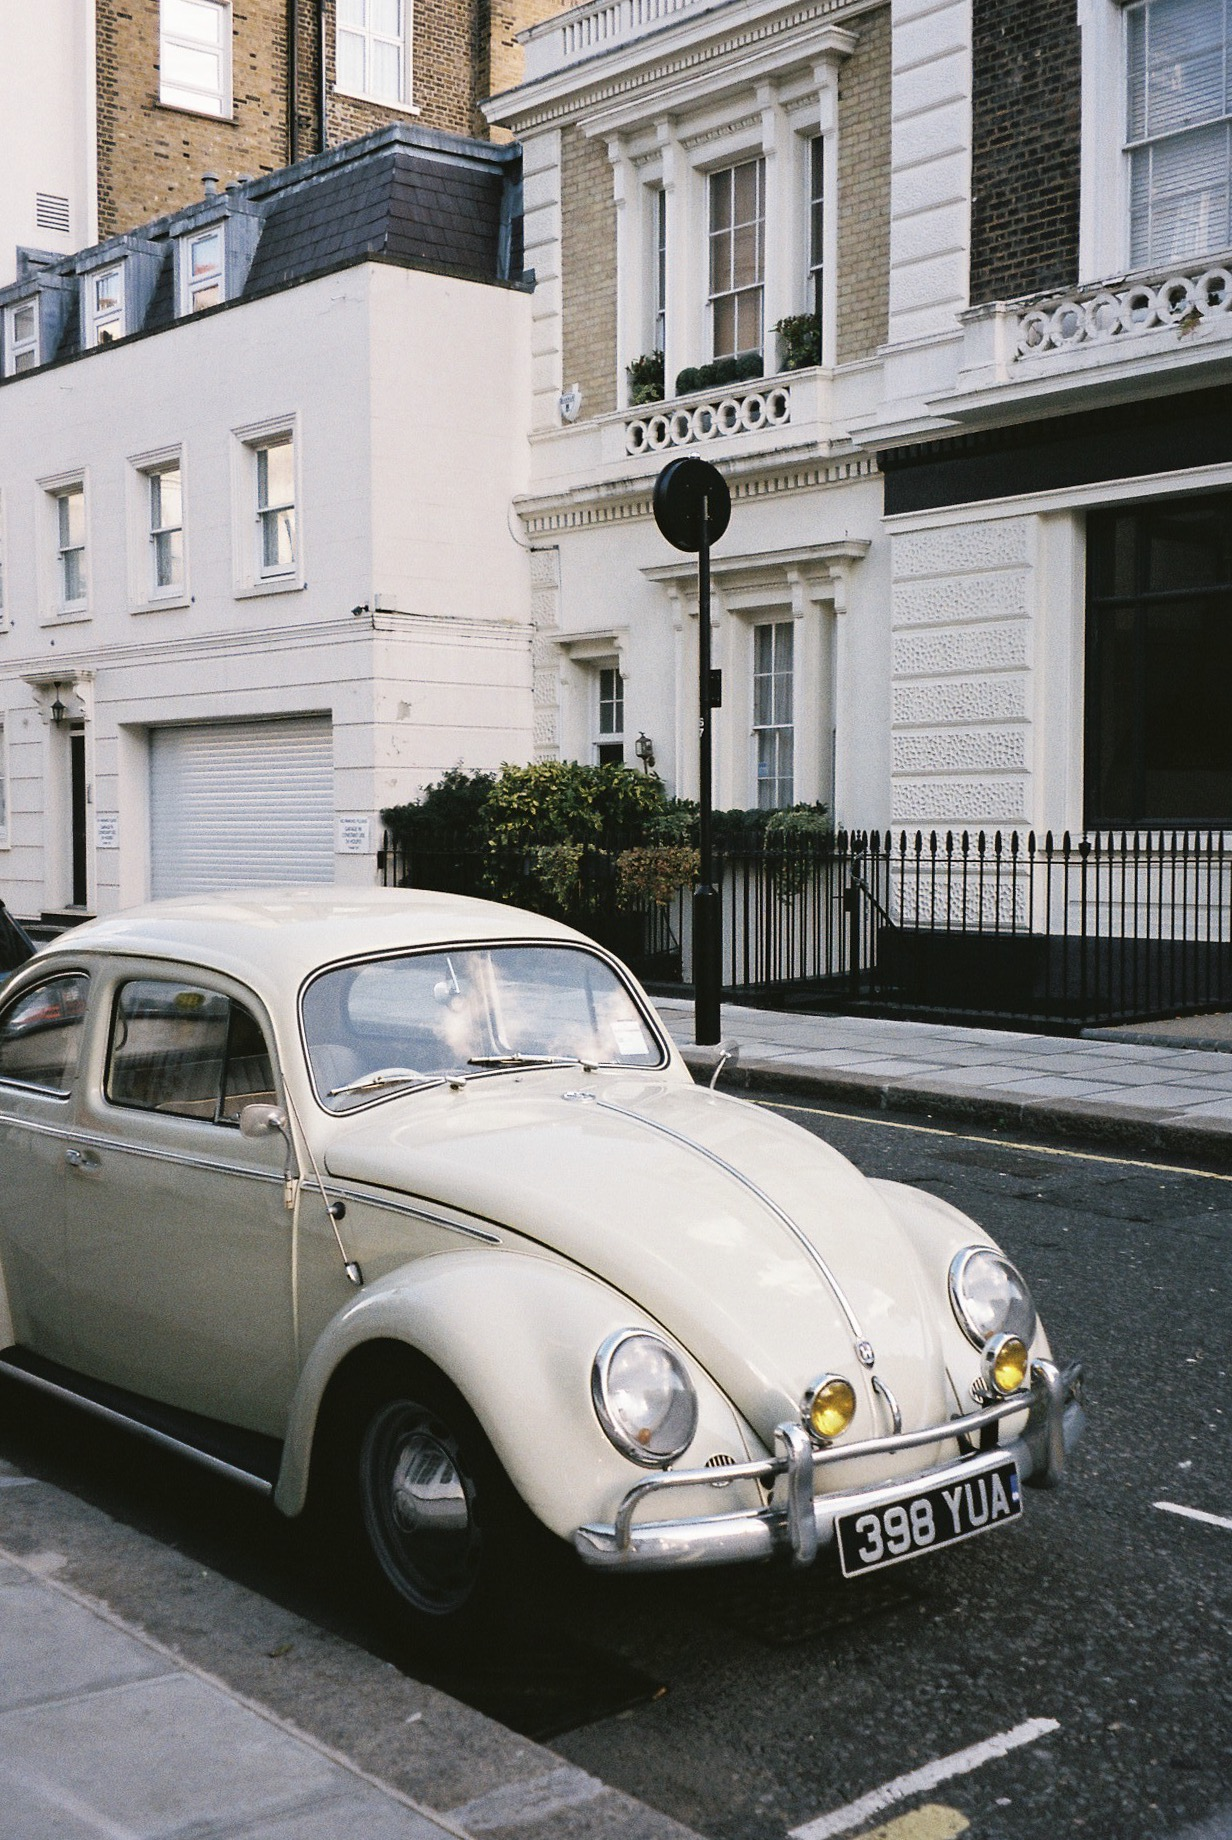 If you follow me on Instagram you must have already noticed that I have an obsession with vintage cars, in fact, you will see that throughout this diary you will find a few more. This photograph was taken in the area of Victoria in London. /  Se me segues no Instagram já deves ter visto que tenho uma obsessão por carros antigos, aliás, verás que ao longo deste diário encontrarás mais uns quantos. Esta fotografia foi tirada na zona da Victoria em Londres.